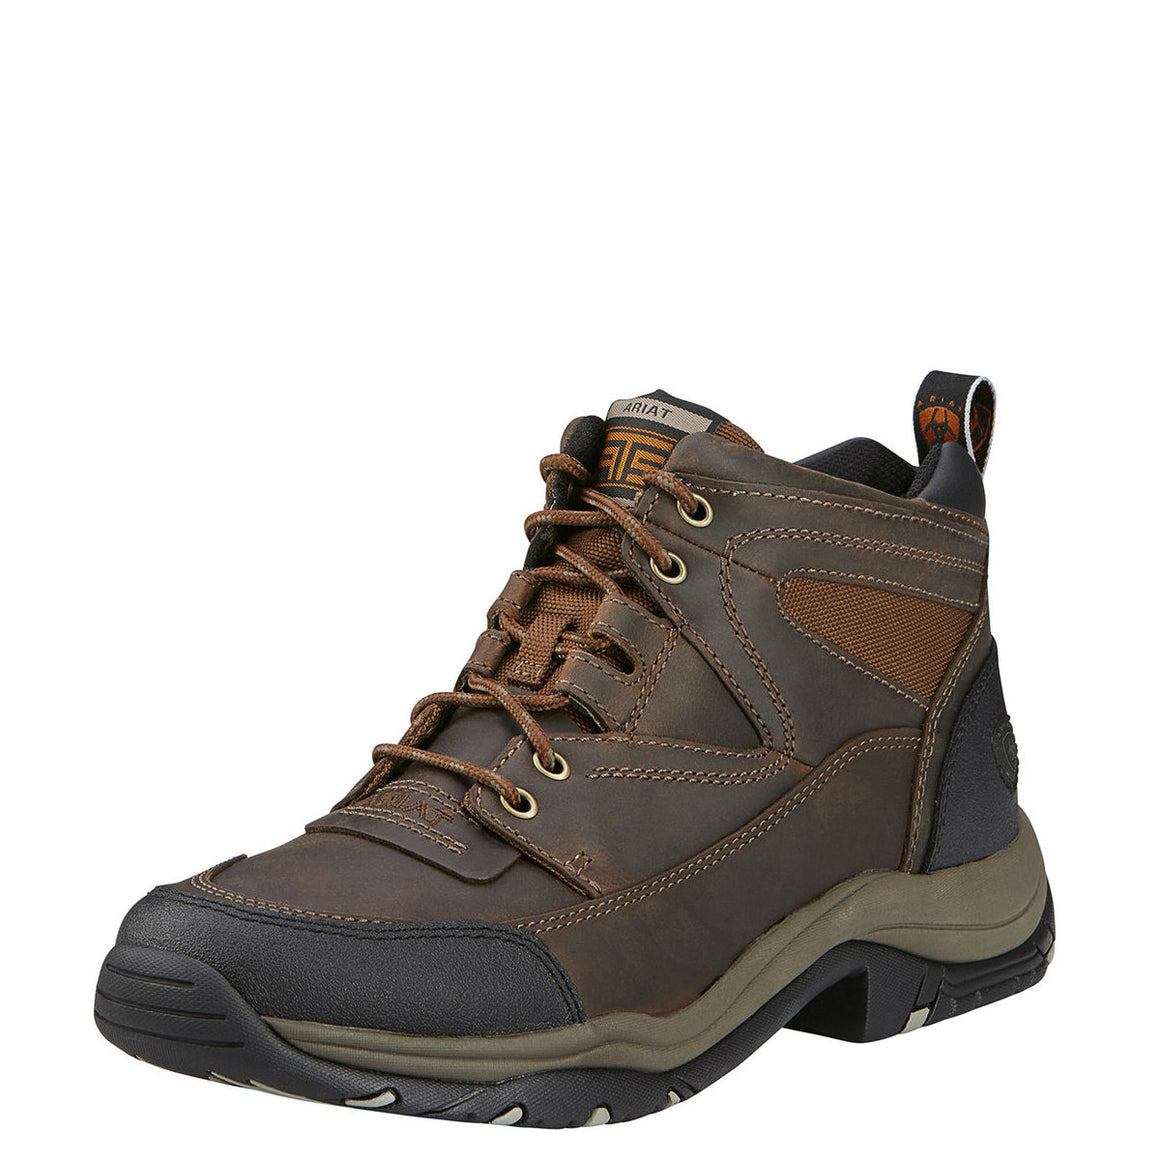 Ariat Men's Terrain Endurance Boot - Distressed Brown 10002182 - ShoeShackOnline